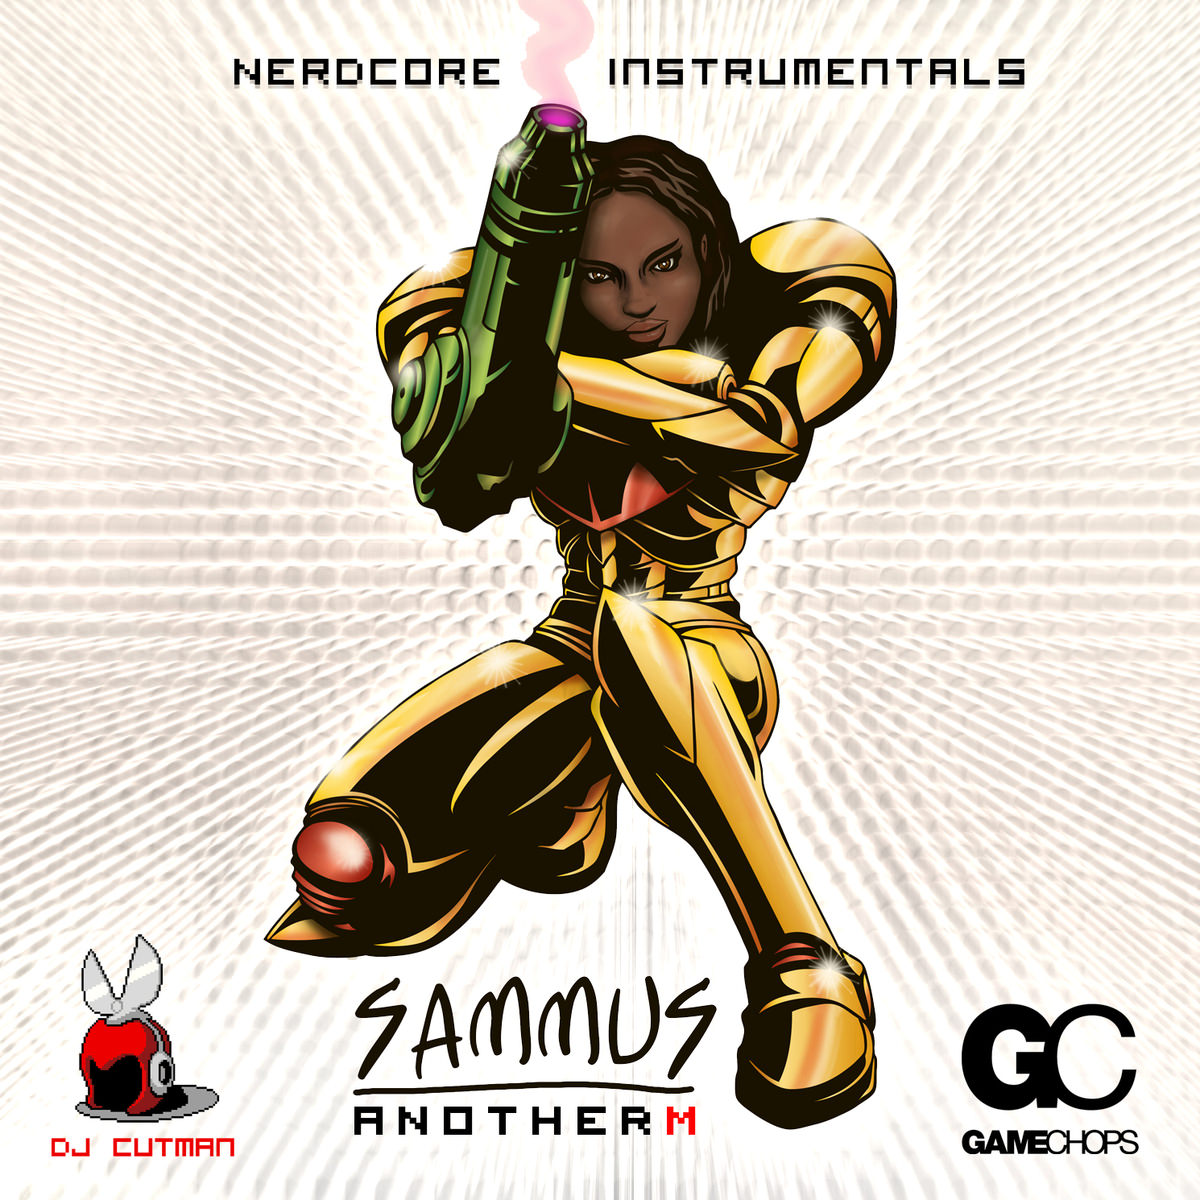 DJ Cutman & Sammus - Another M Nerdcore Instrumentals